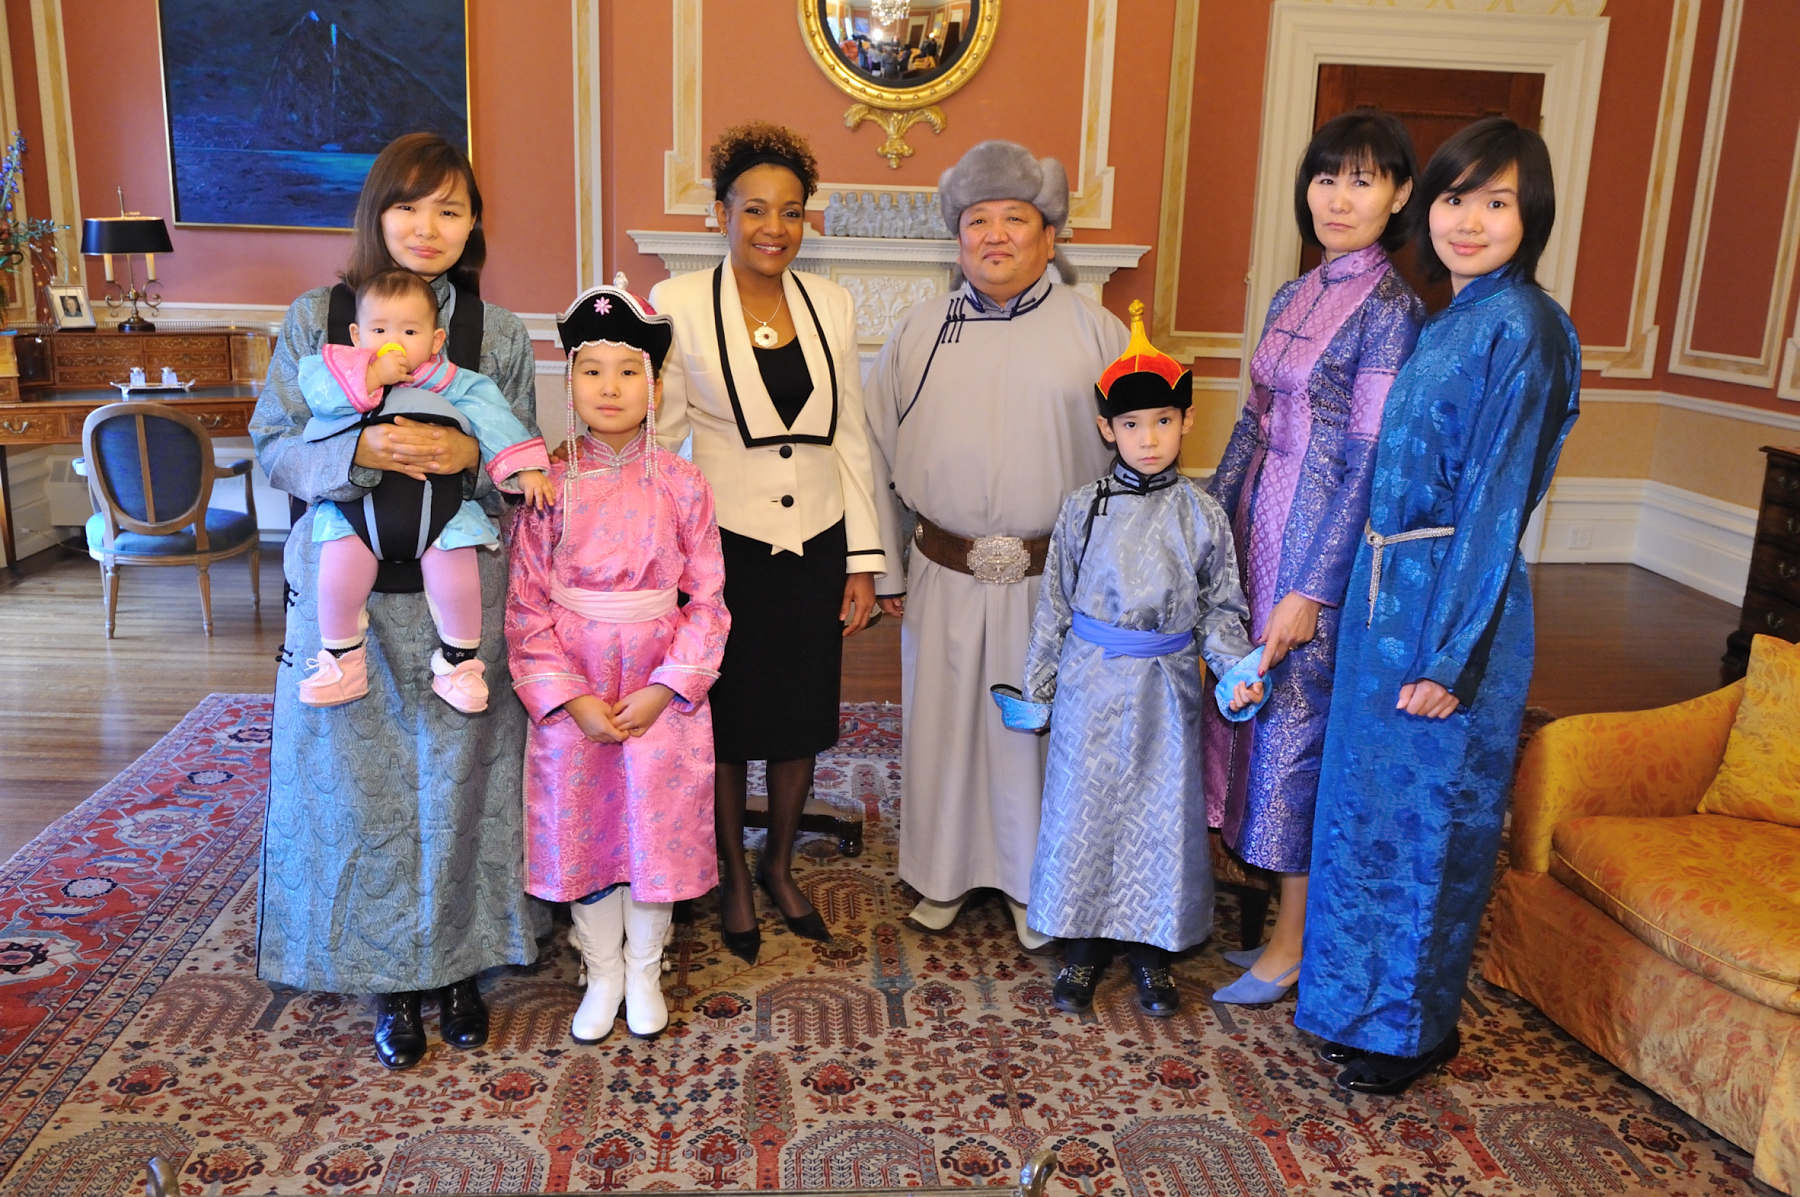 The Ambassador of Mongolia, His Excellency Tundevdorj Zalaa-Uul, was accompanied by his wife, children and grand-child.